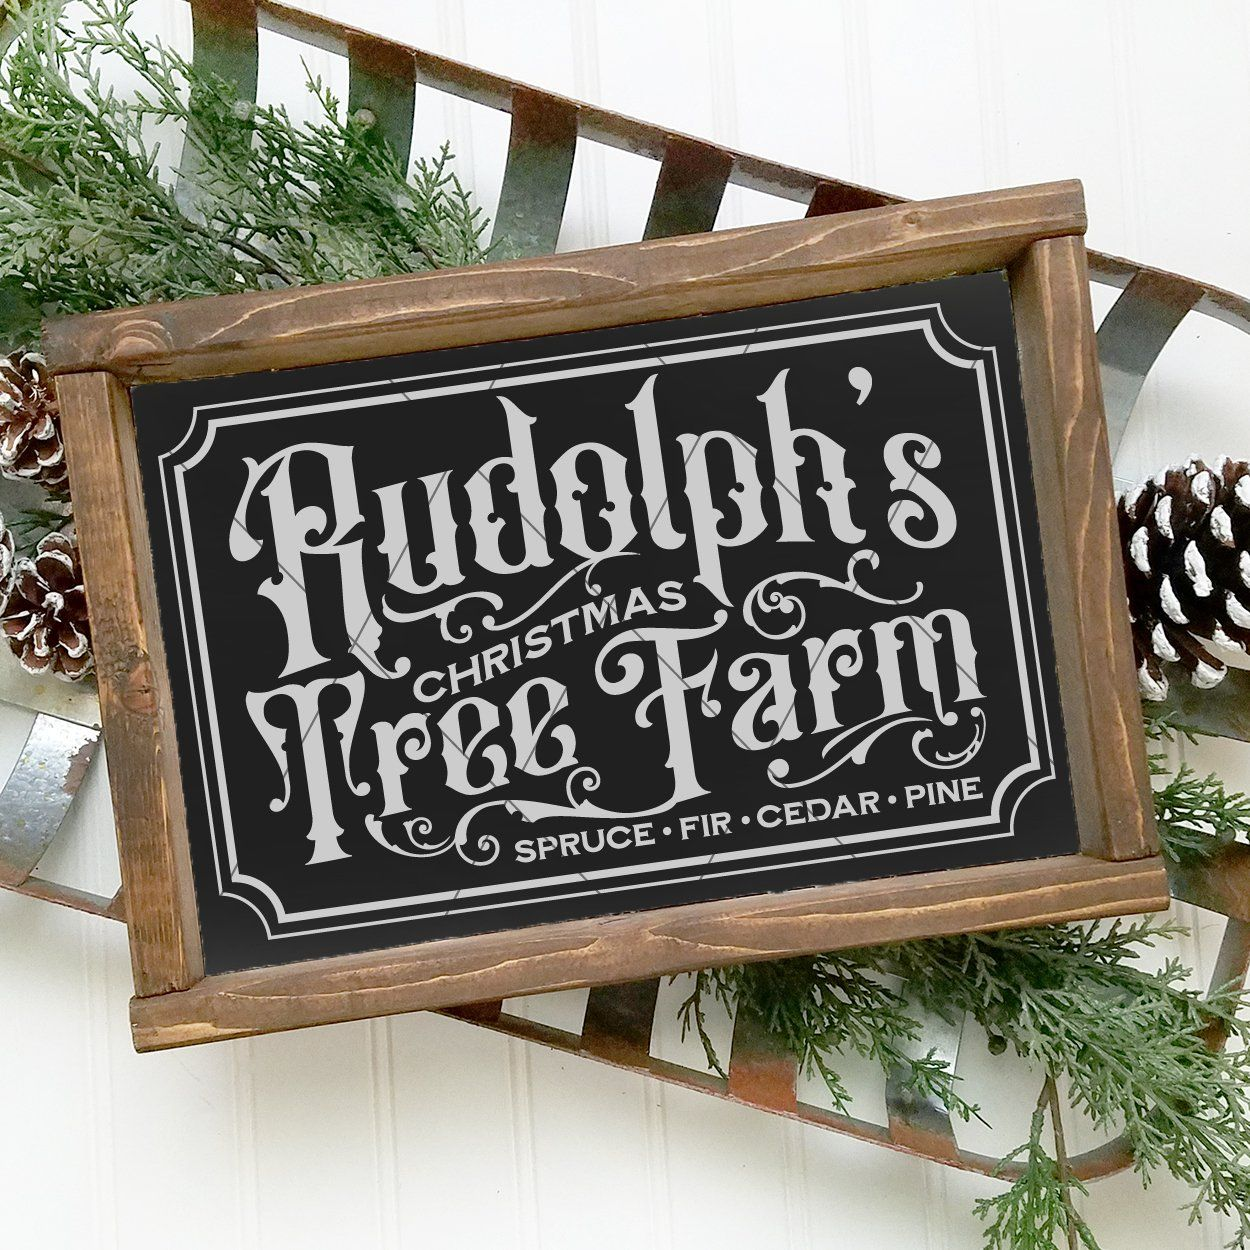 Rudolph's Christmas Tree Farm Vintage Christmas Farmhouse SVG File - Commercial Use SVG Files